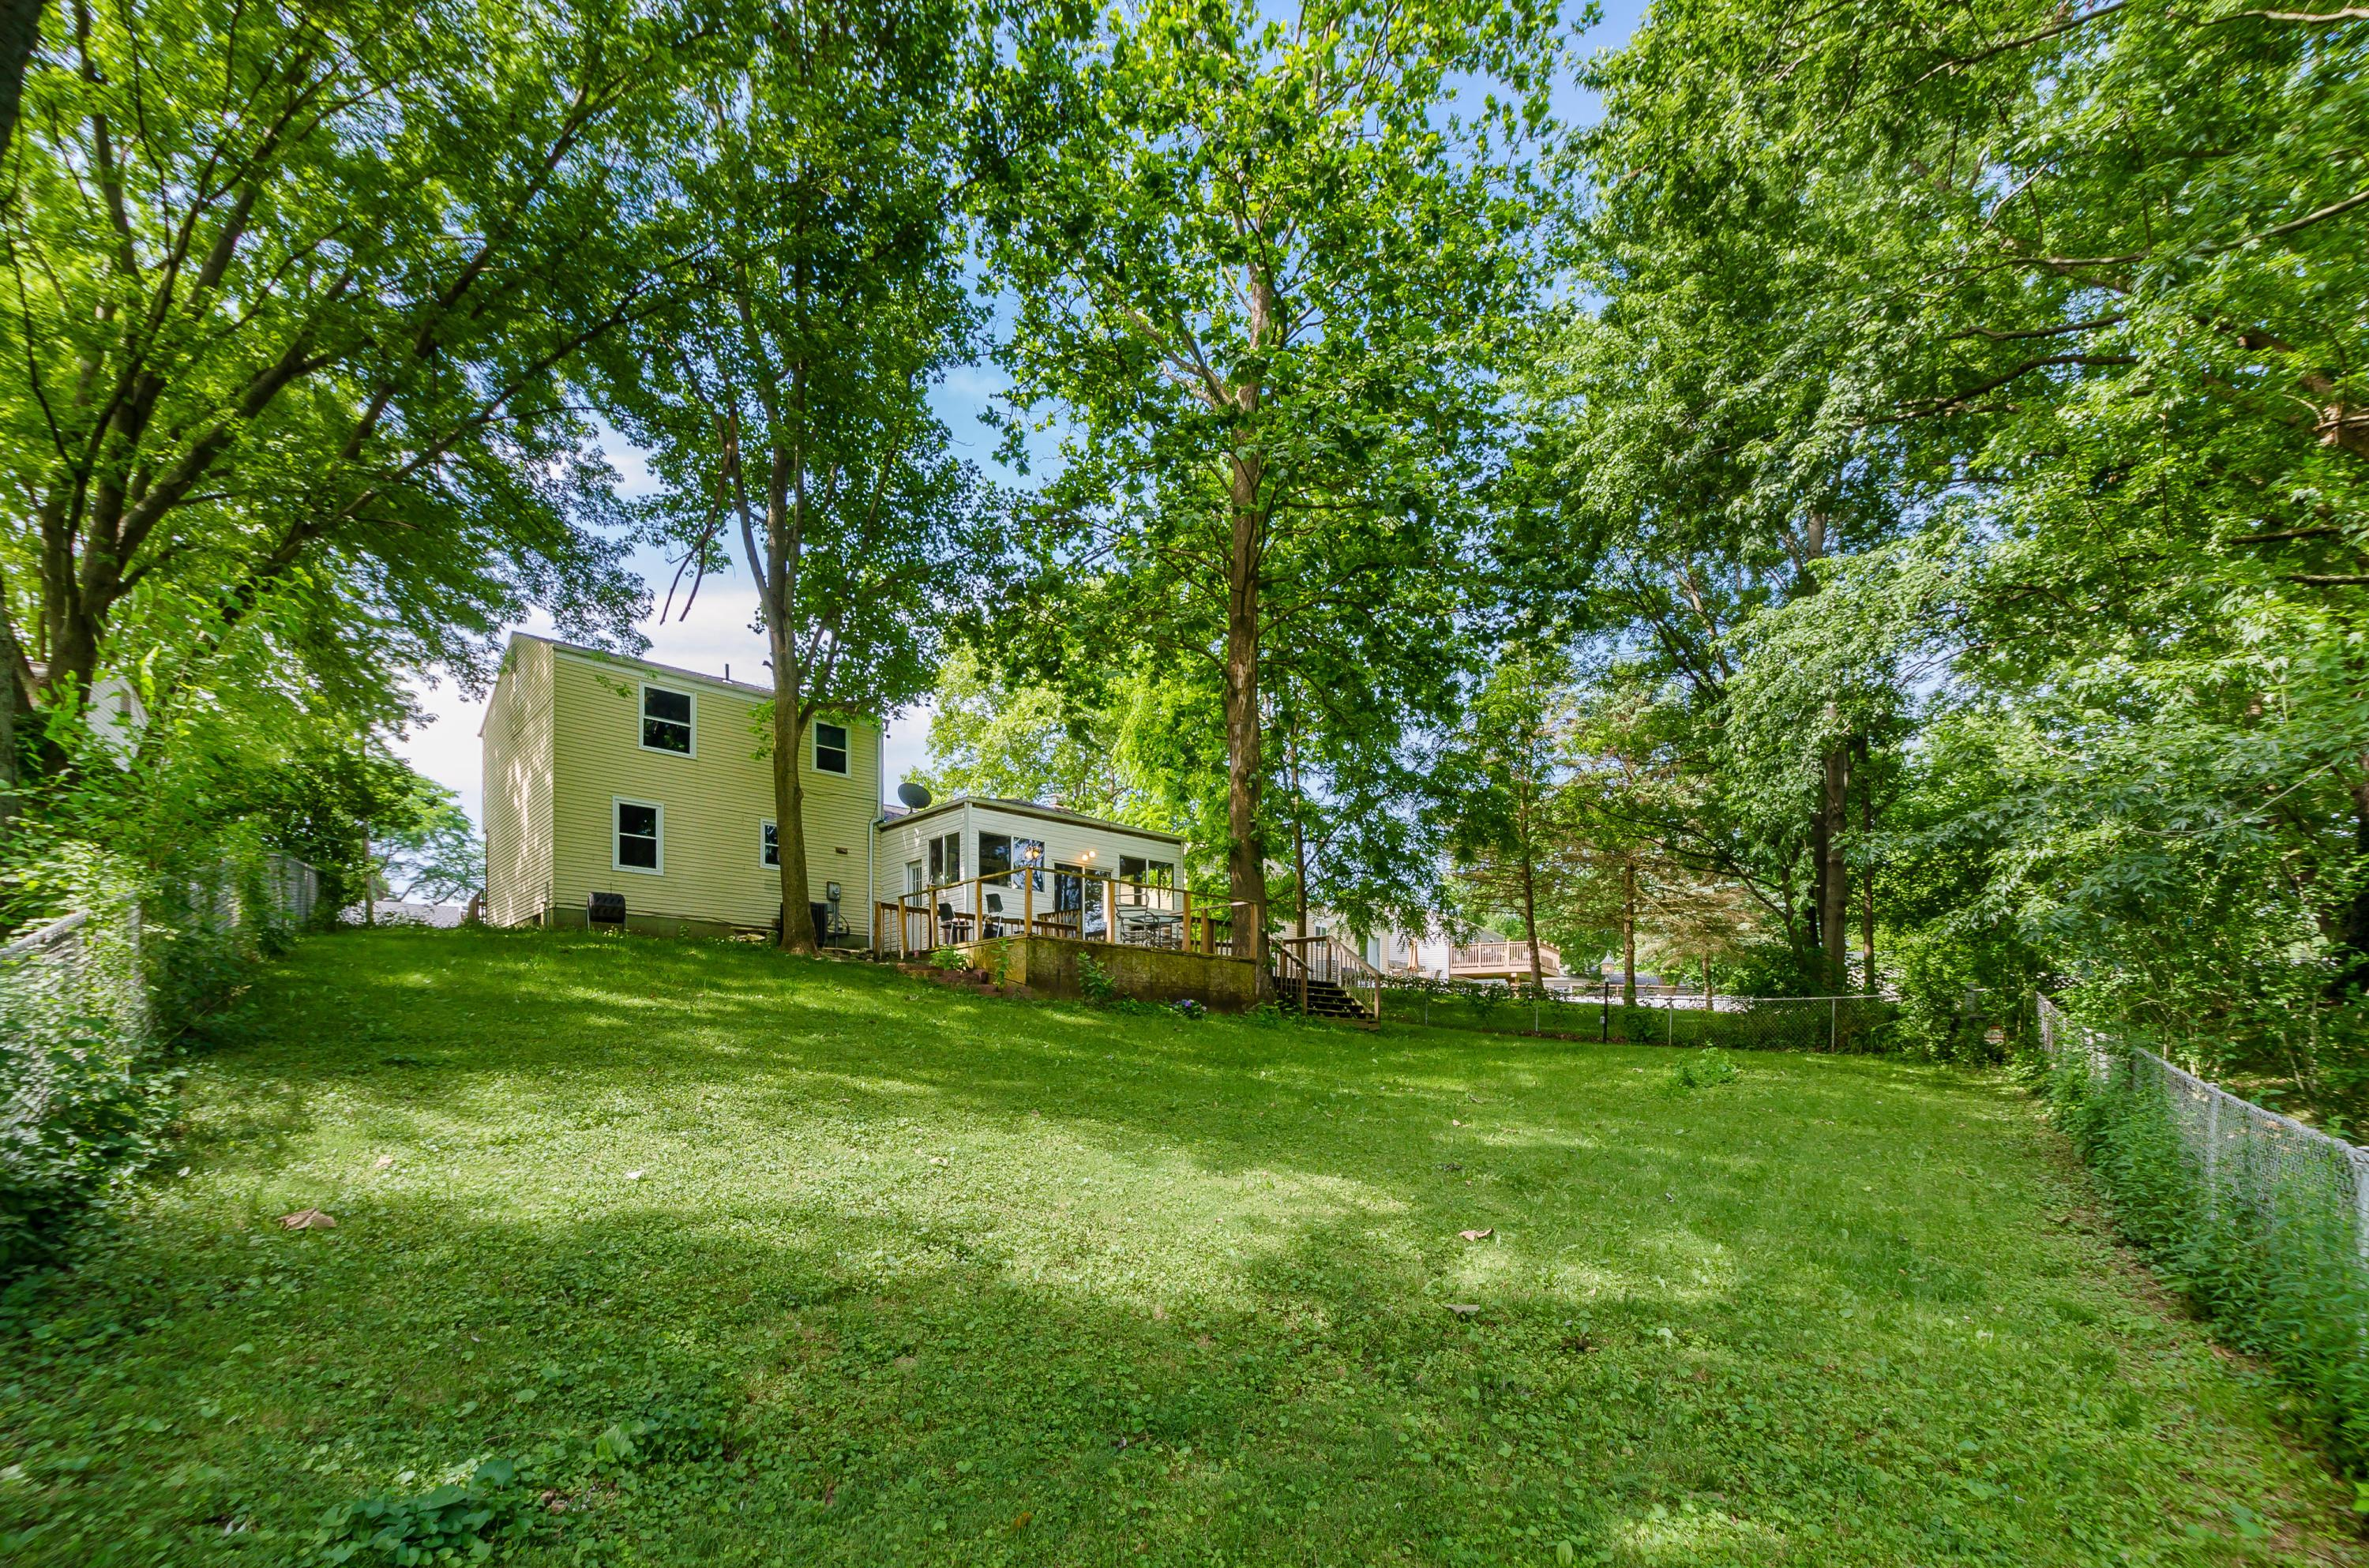 8820 Crestwater Drive, Galloway, Ohio 43119, 3 Bedrooms Bedrooms, ,2 BathroomsBathrooms,Residential,For Sale,Crestwater,220021013